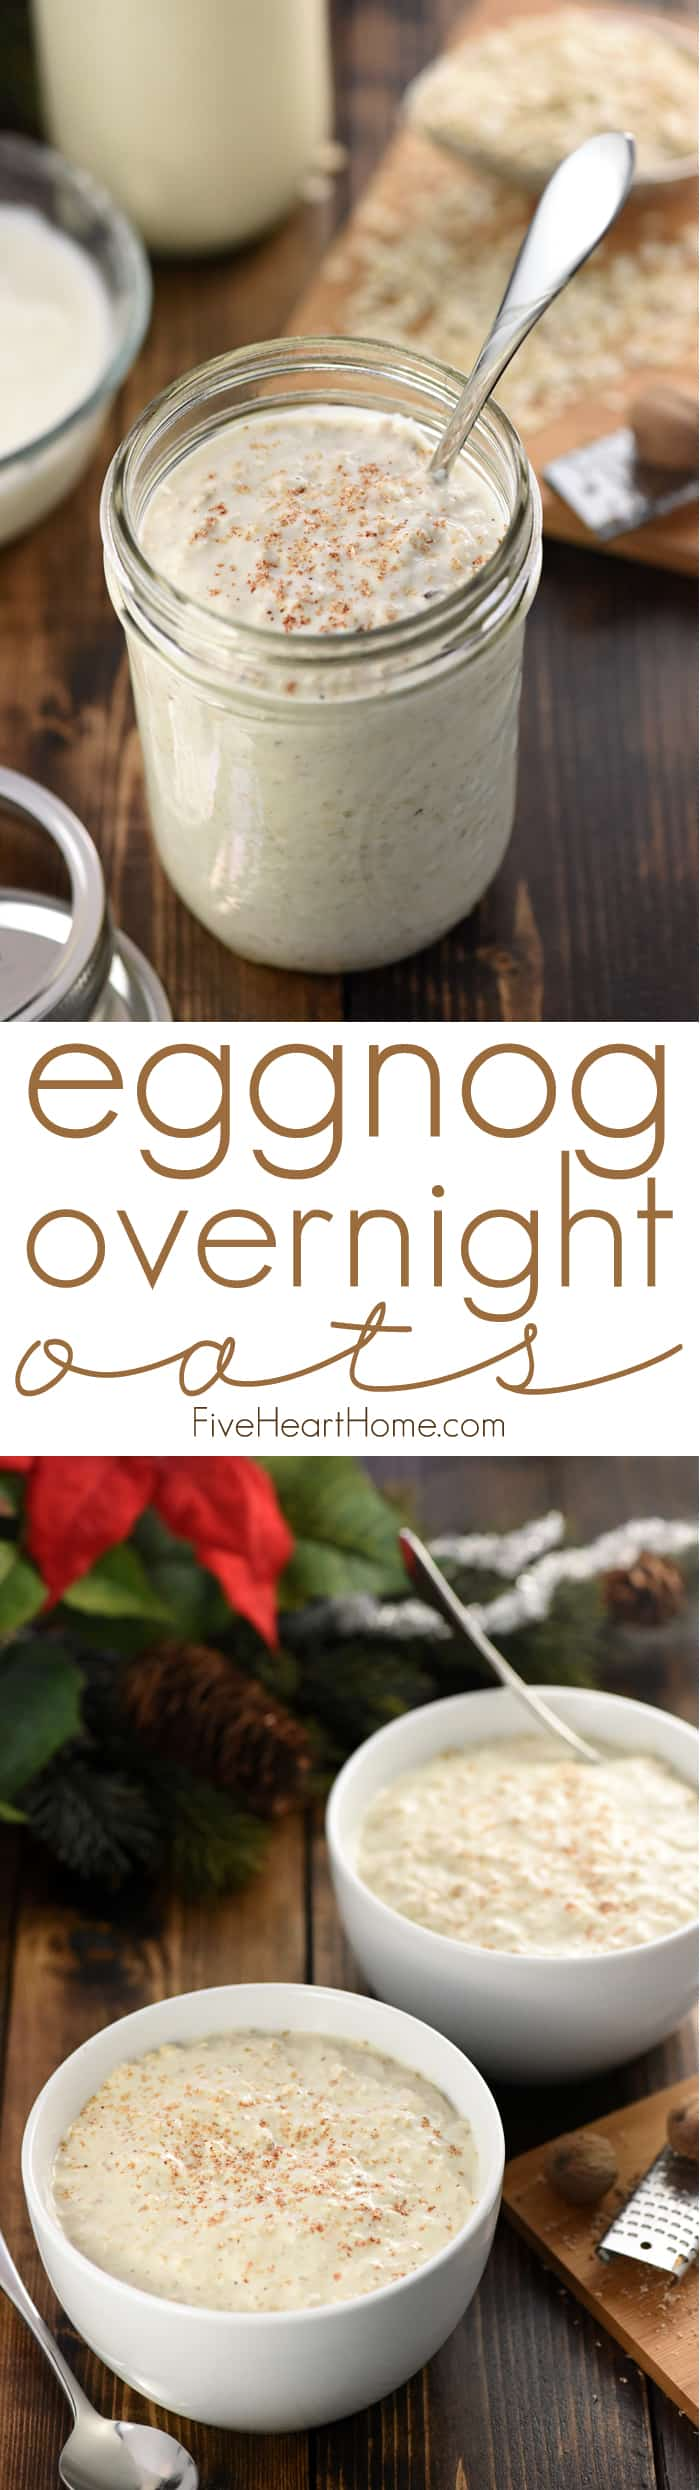 Eggnog Overnight Oats ~ with just five ingredients and two minutes of prep before bed, you can wake up to a creamy, wholesome, ready-to-eat holiday breakfast! | FiveHeartHome.com via @fivehearthome